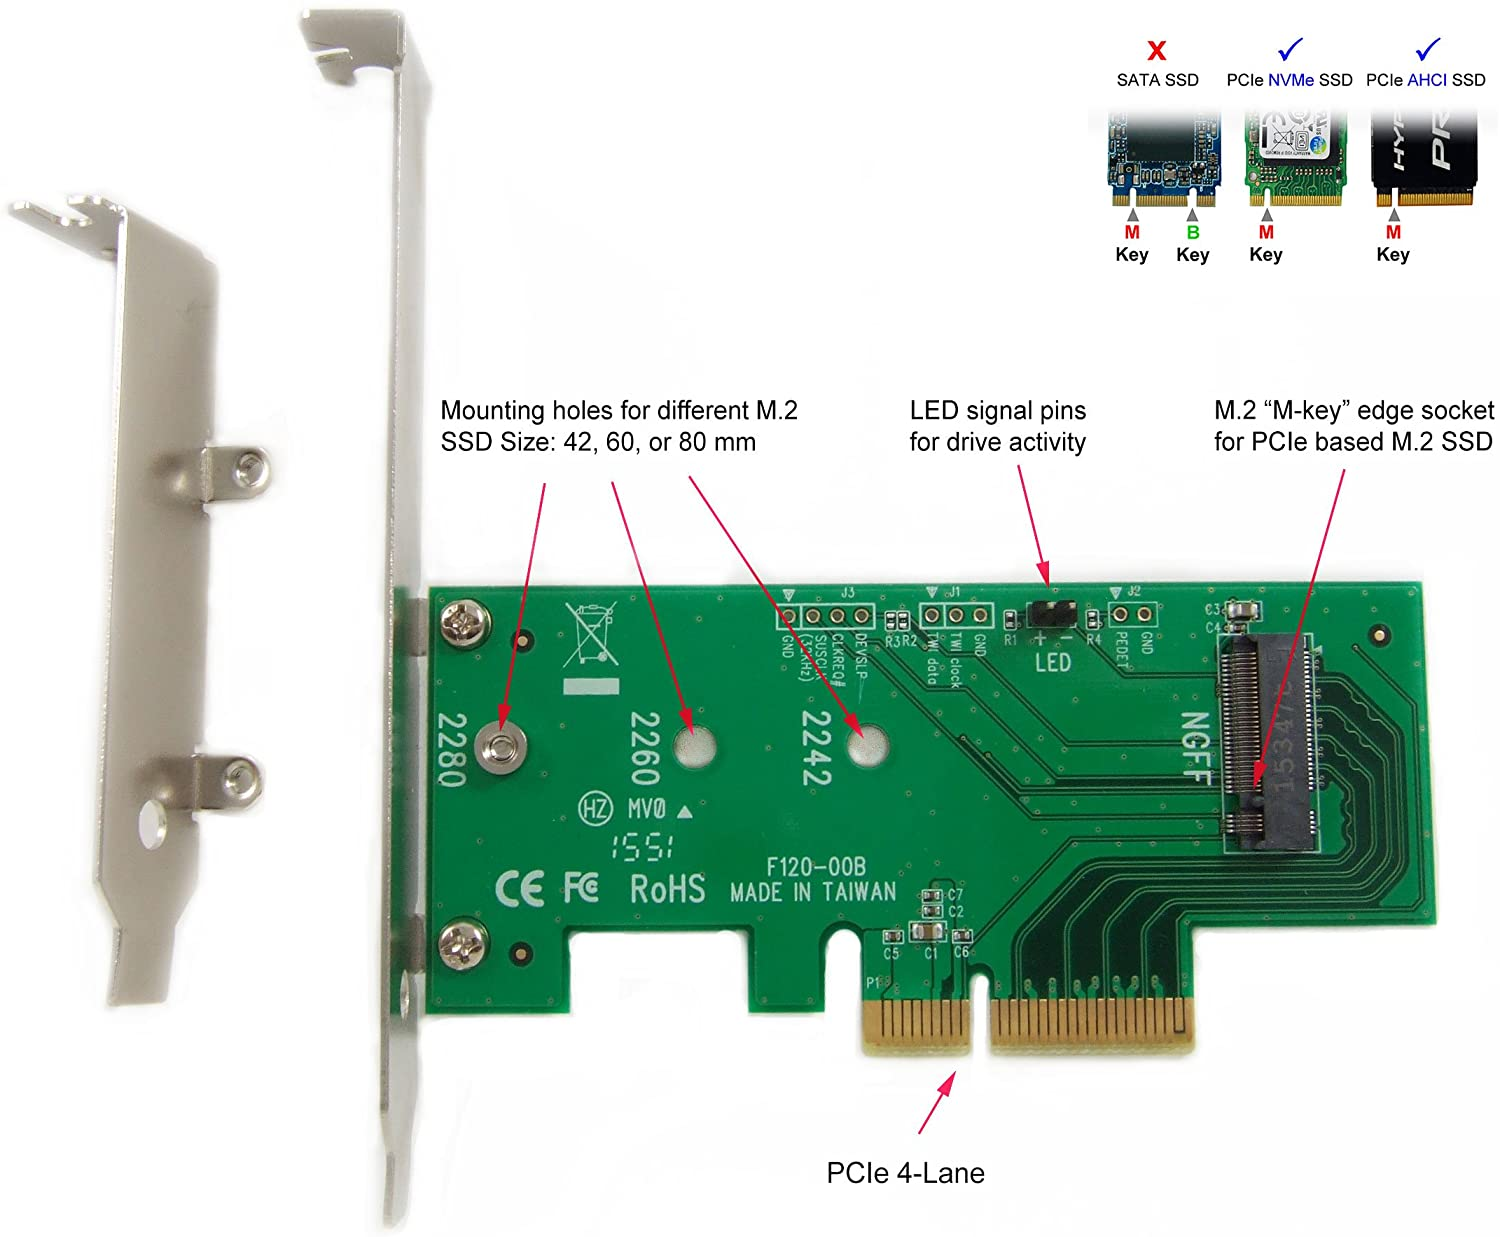 Ableconn PEXM2-SSD M.2 NGFF PCIe SSD to PCI Express x4 Host Adapter Card - Support M.2 PCIe (NVMe or AHCI) Type 2280, 2260, 2242